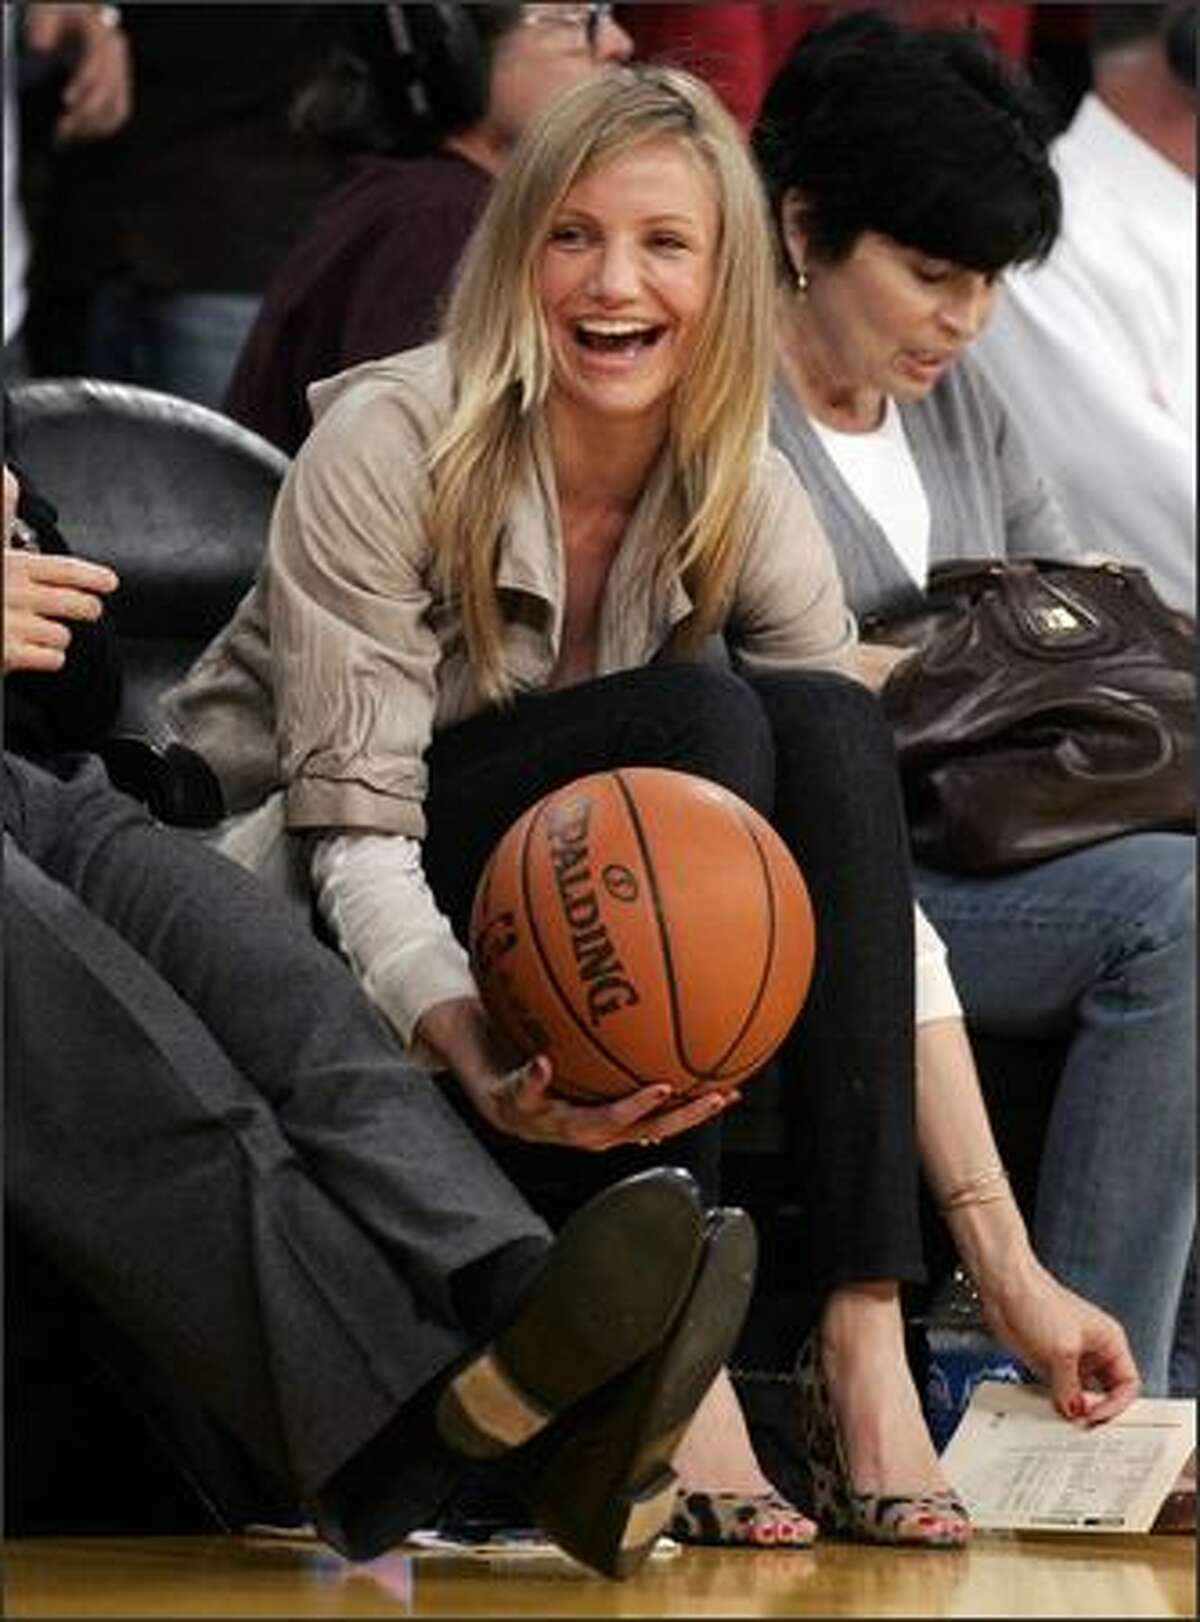 Actress Cameron Diaz catches a basketball as she sits courtside during Game 2 of the NBA Western Conference semi-final basketball playoff game between the Houston Rockets and the Los Angeles Lakers in Los Angeles. (REUTERS/Danny Moloshok)